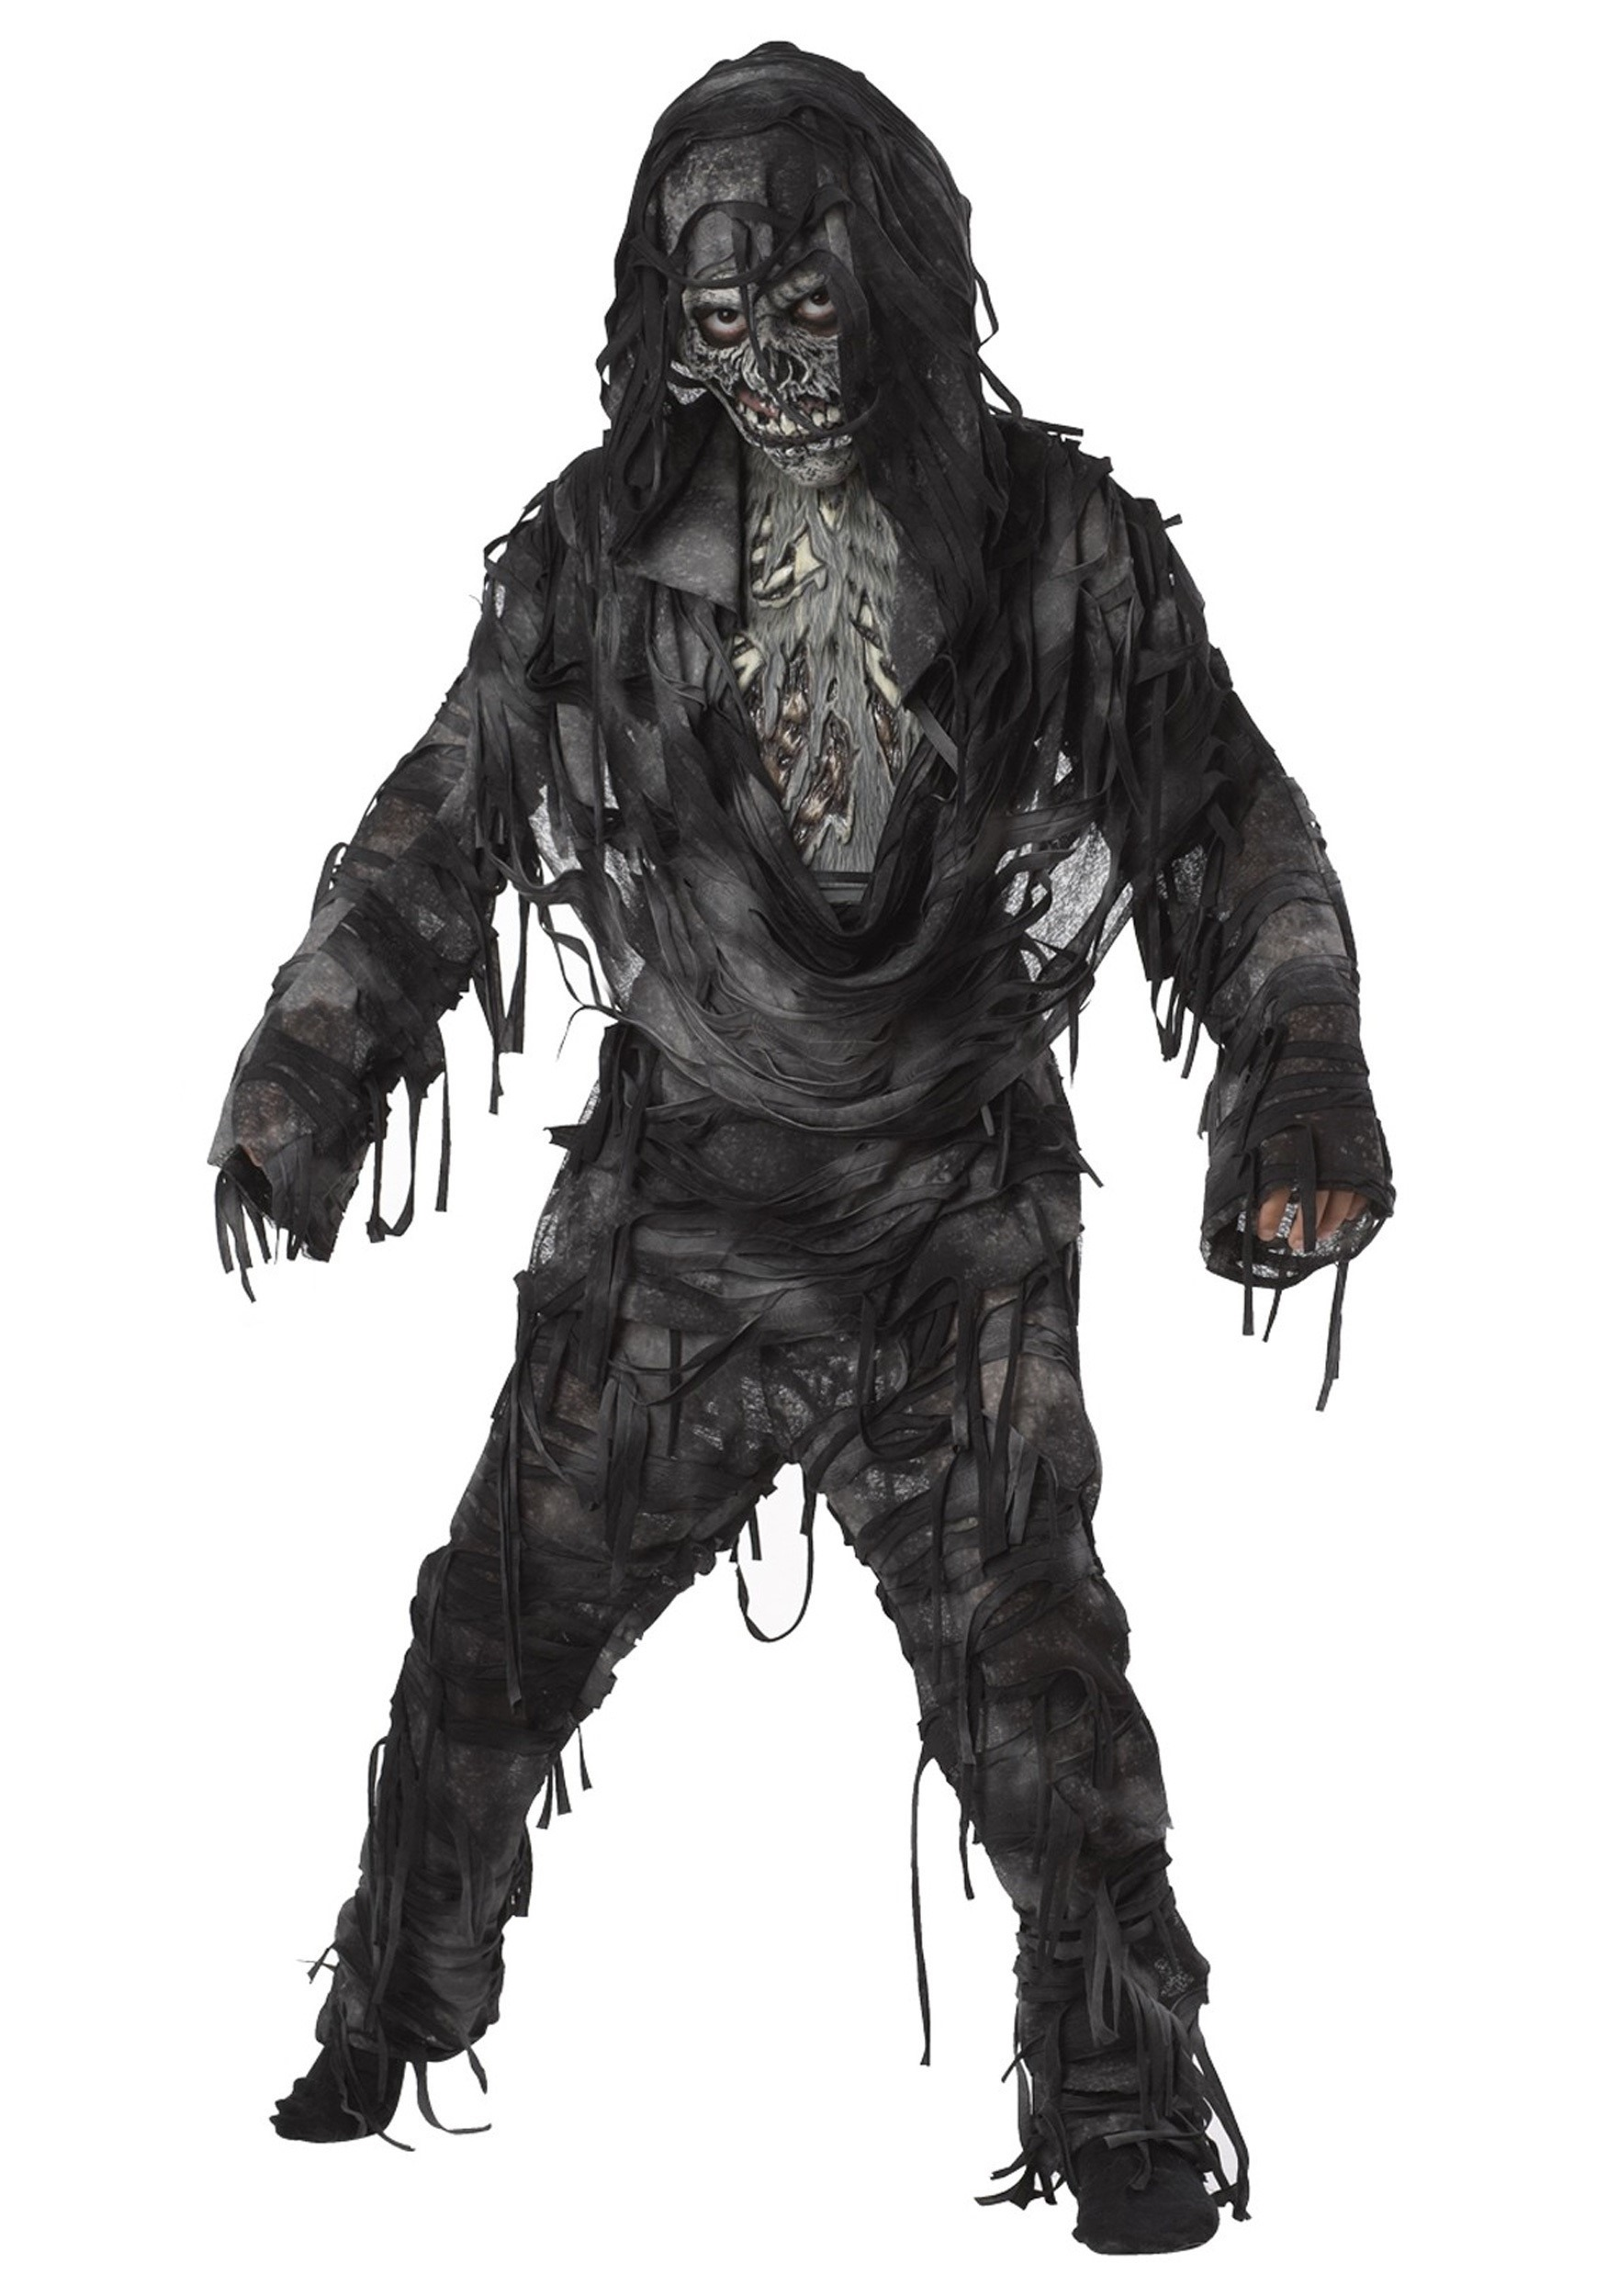 Zombie Costumes & Walking Dead Costumes - HalloweenCostumes.com